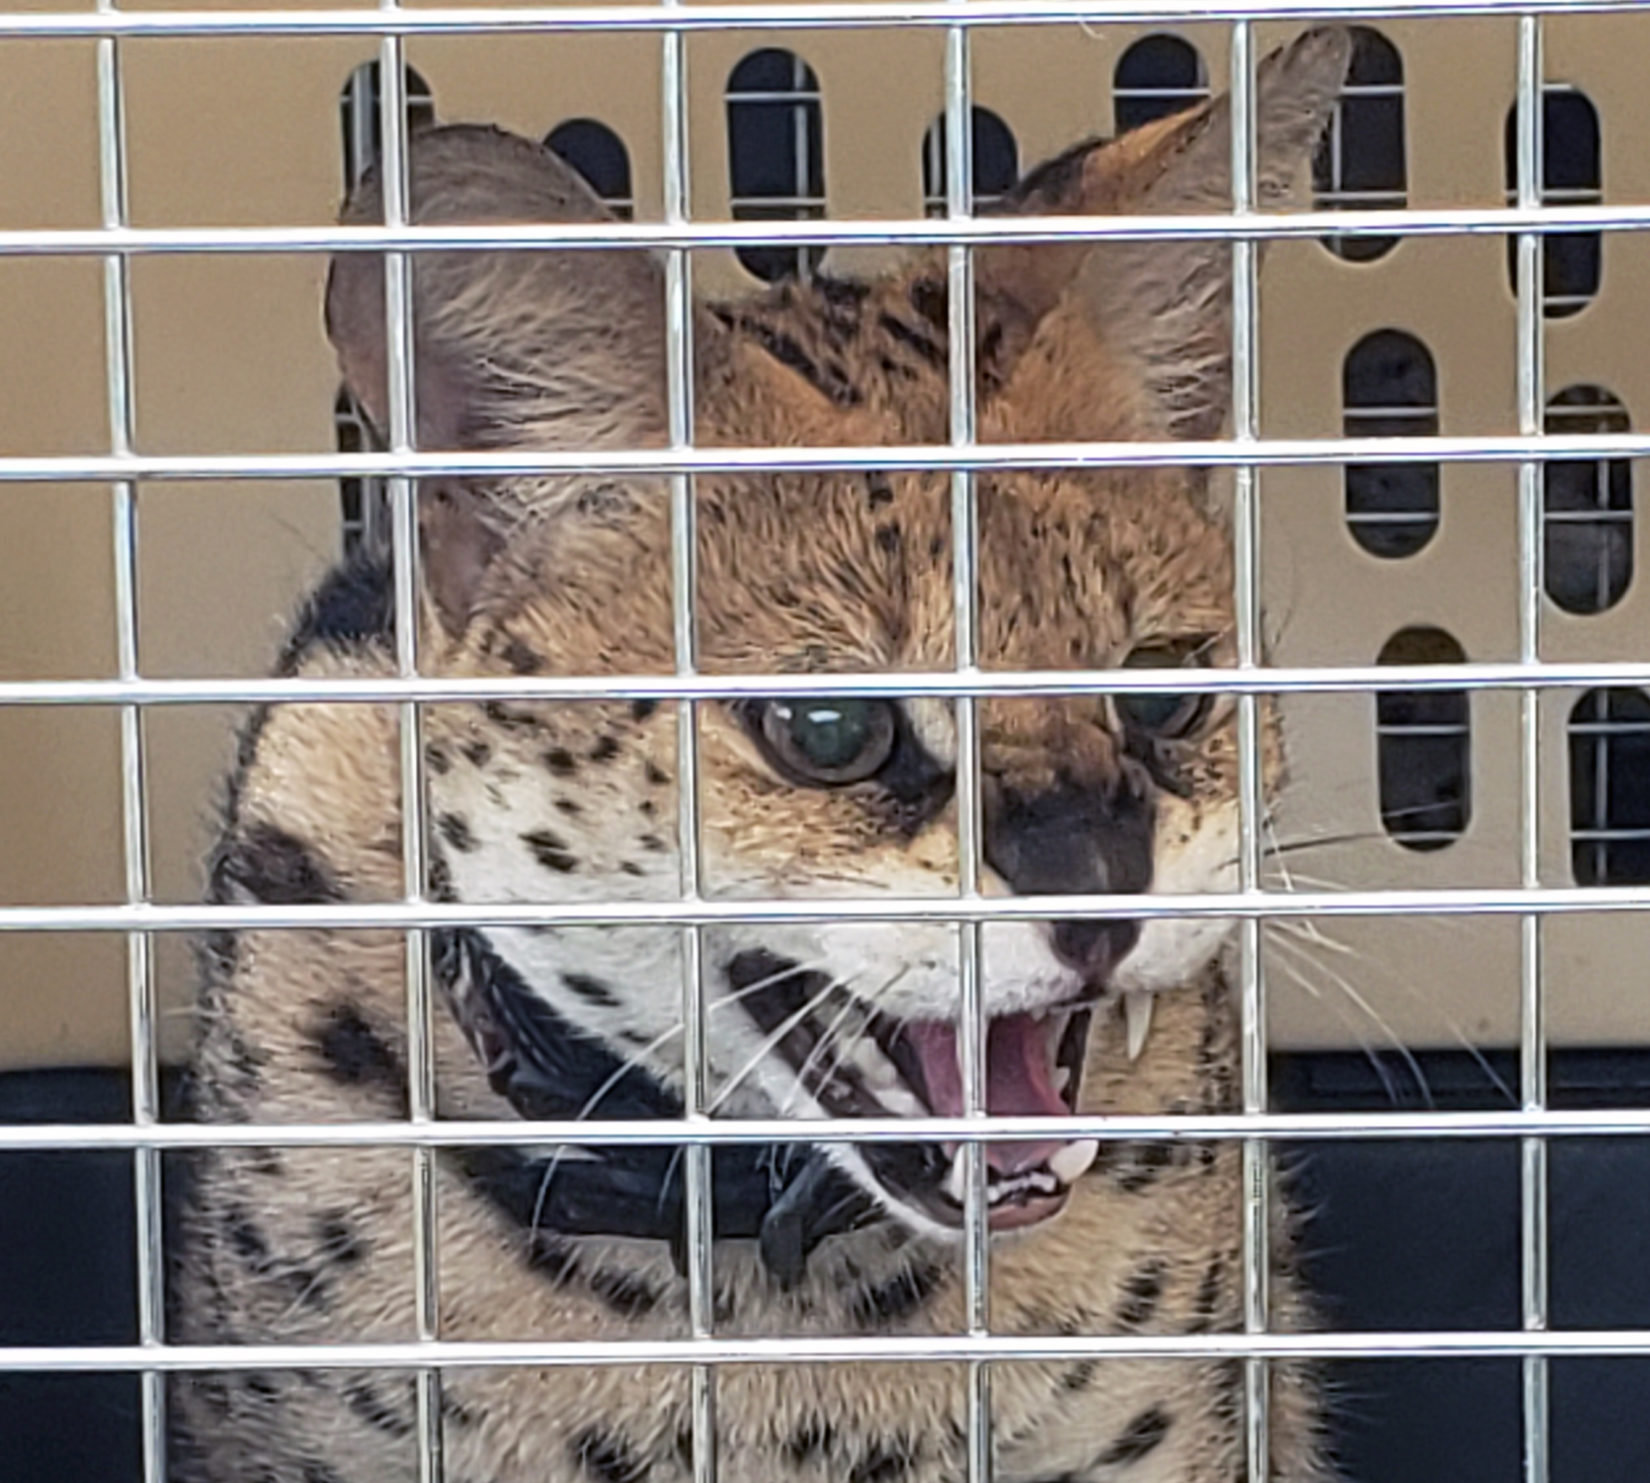 BC SPCA seizes 13 serval cats in distress from Little Fort